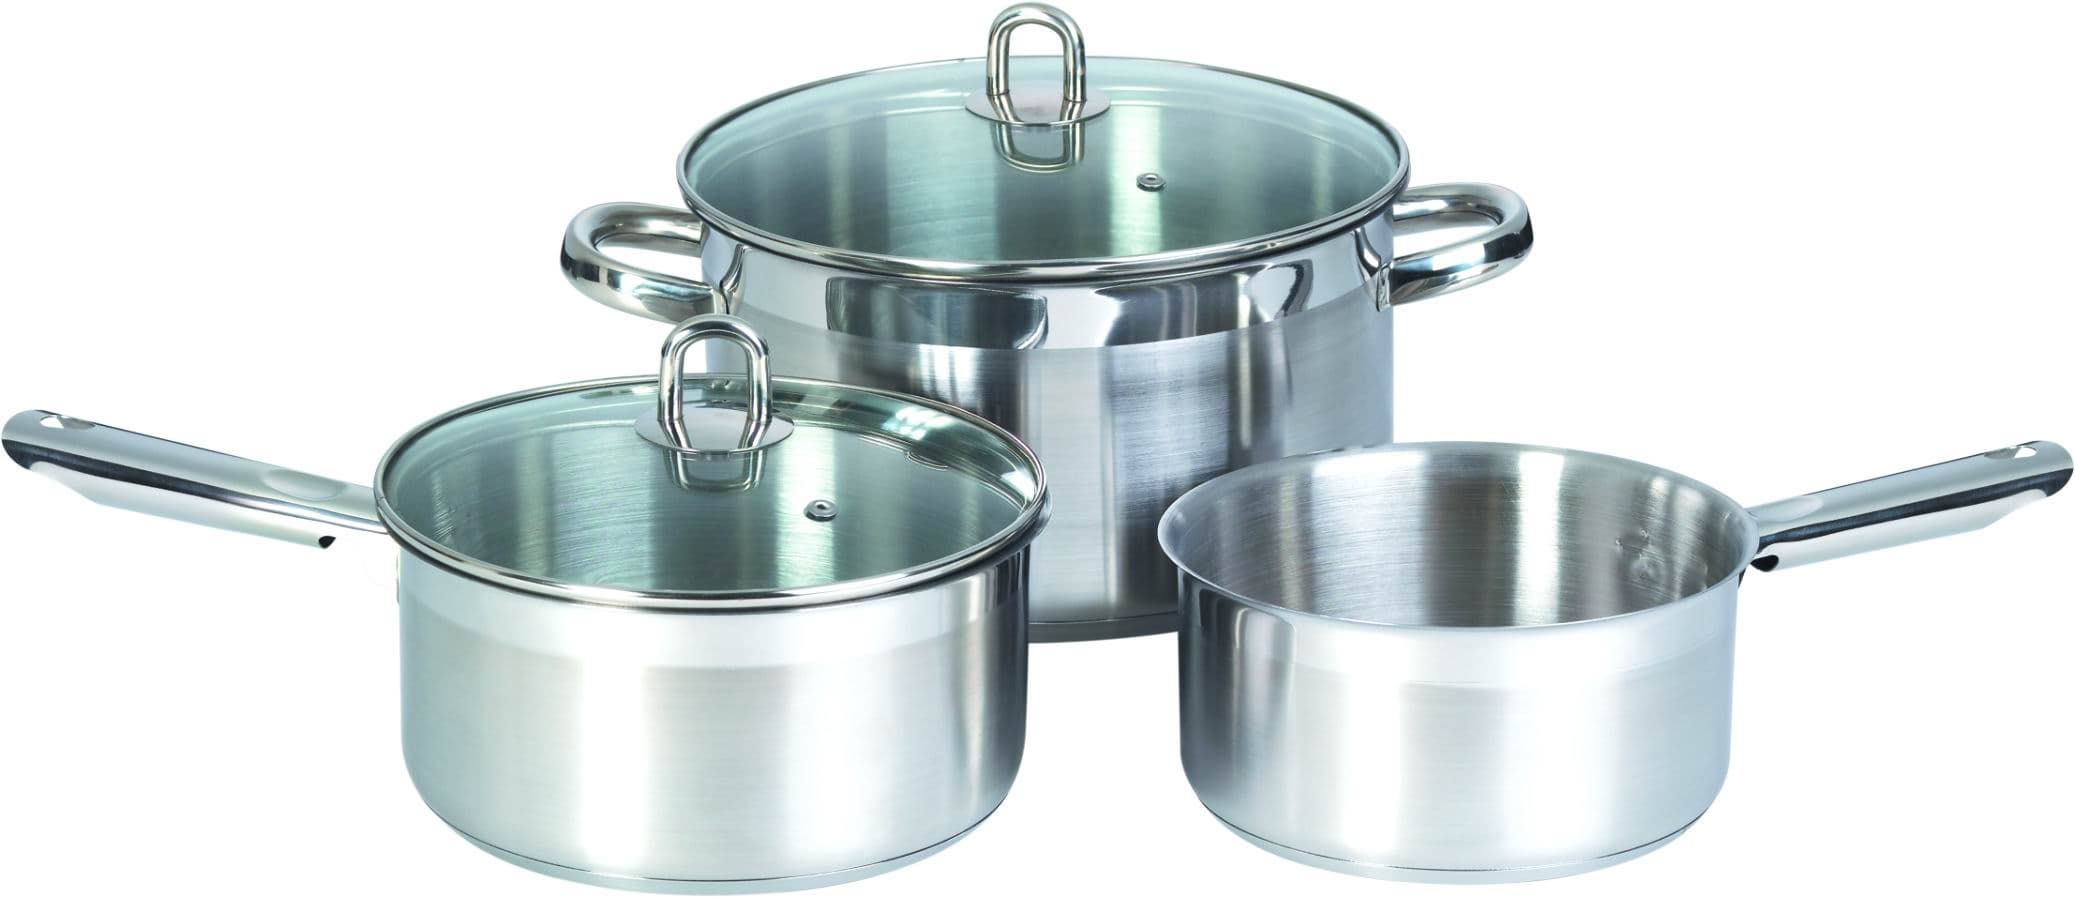 stainless steel cookware sets from goldensea house wares lim